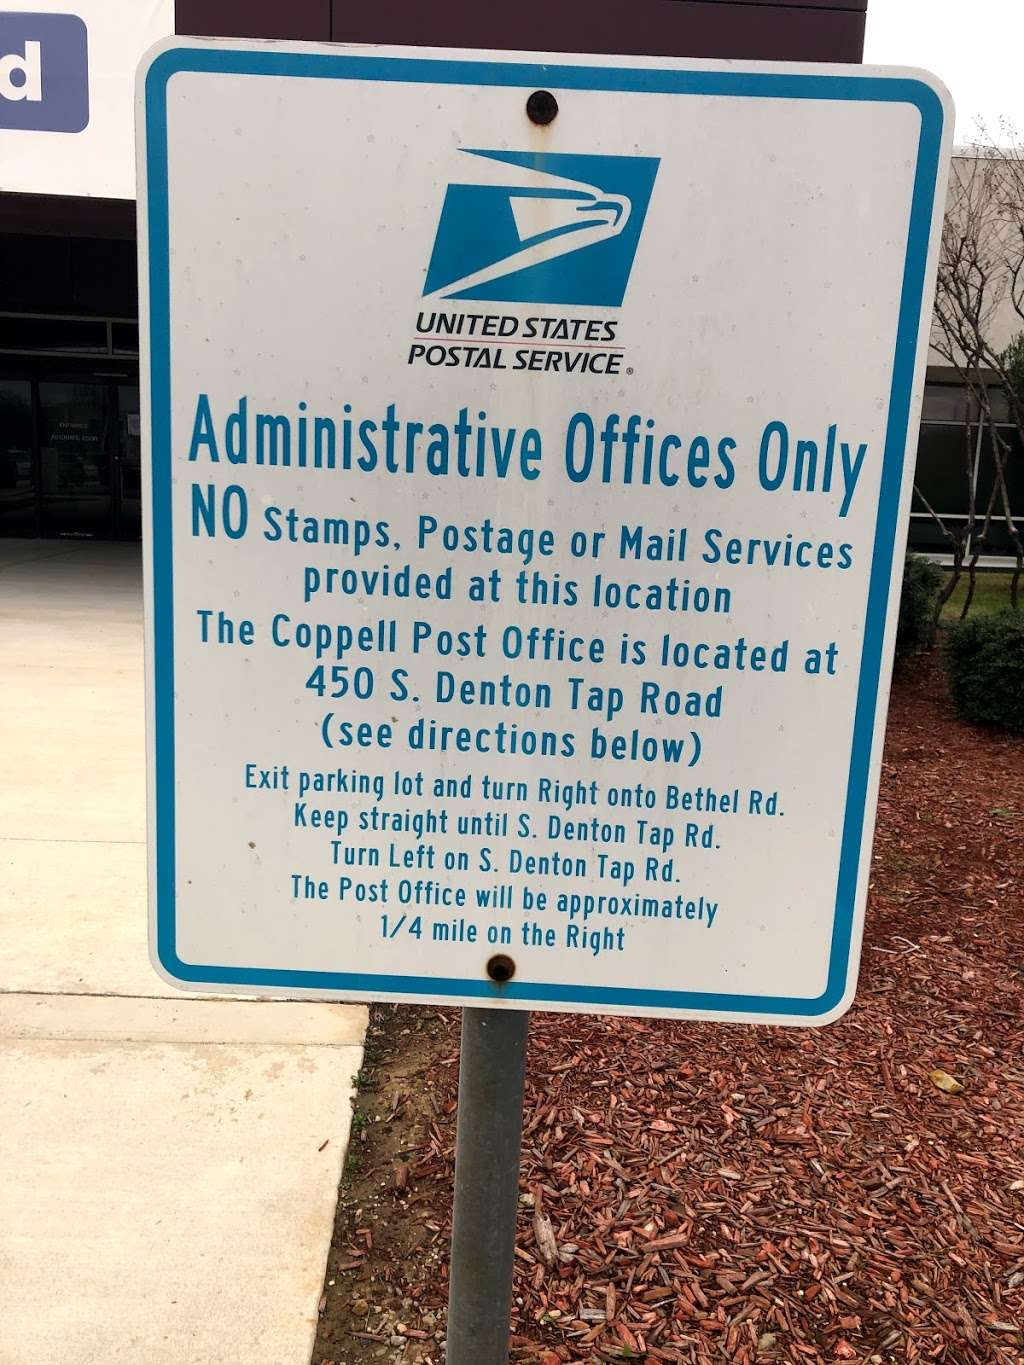 USPS North Texas Processing & Distribution Center - post office  | Photo 1 of 1 | Address: 951 W Bethel Rd, Coppell, TX 75019, USA